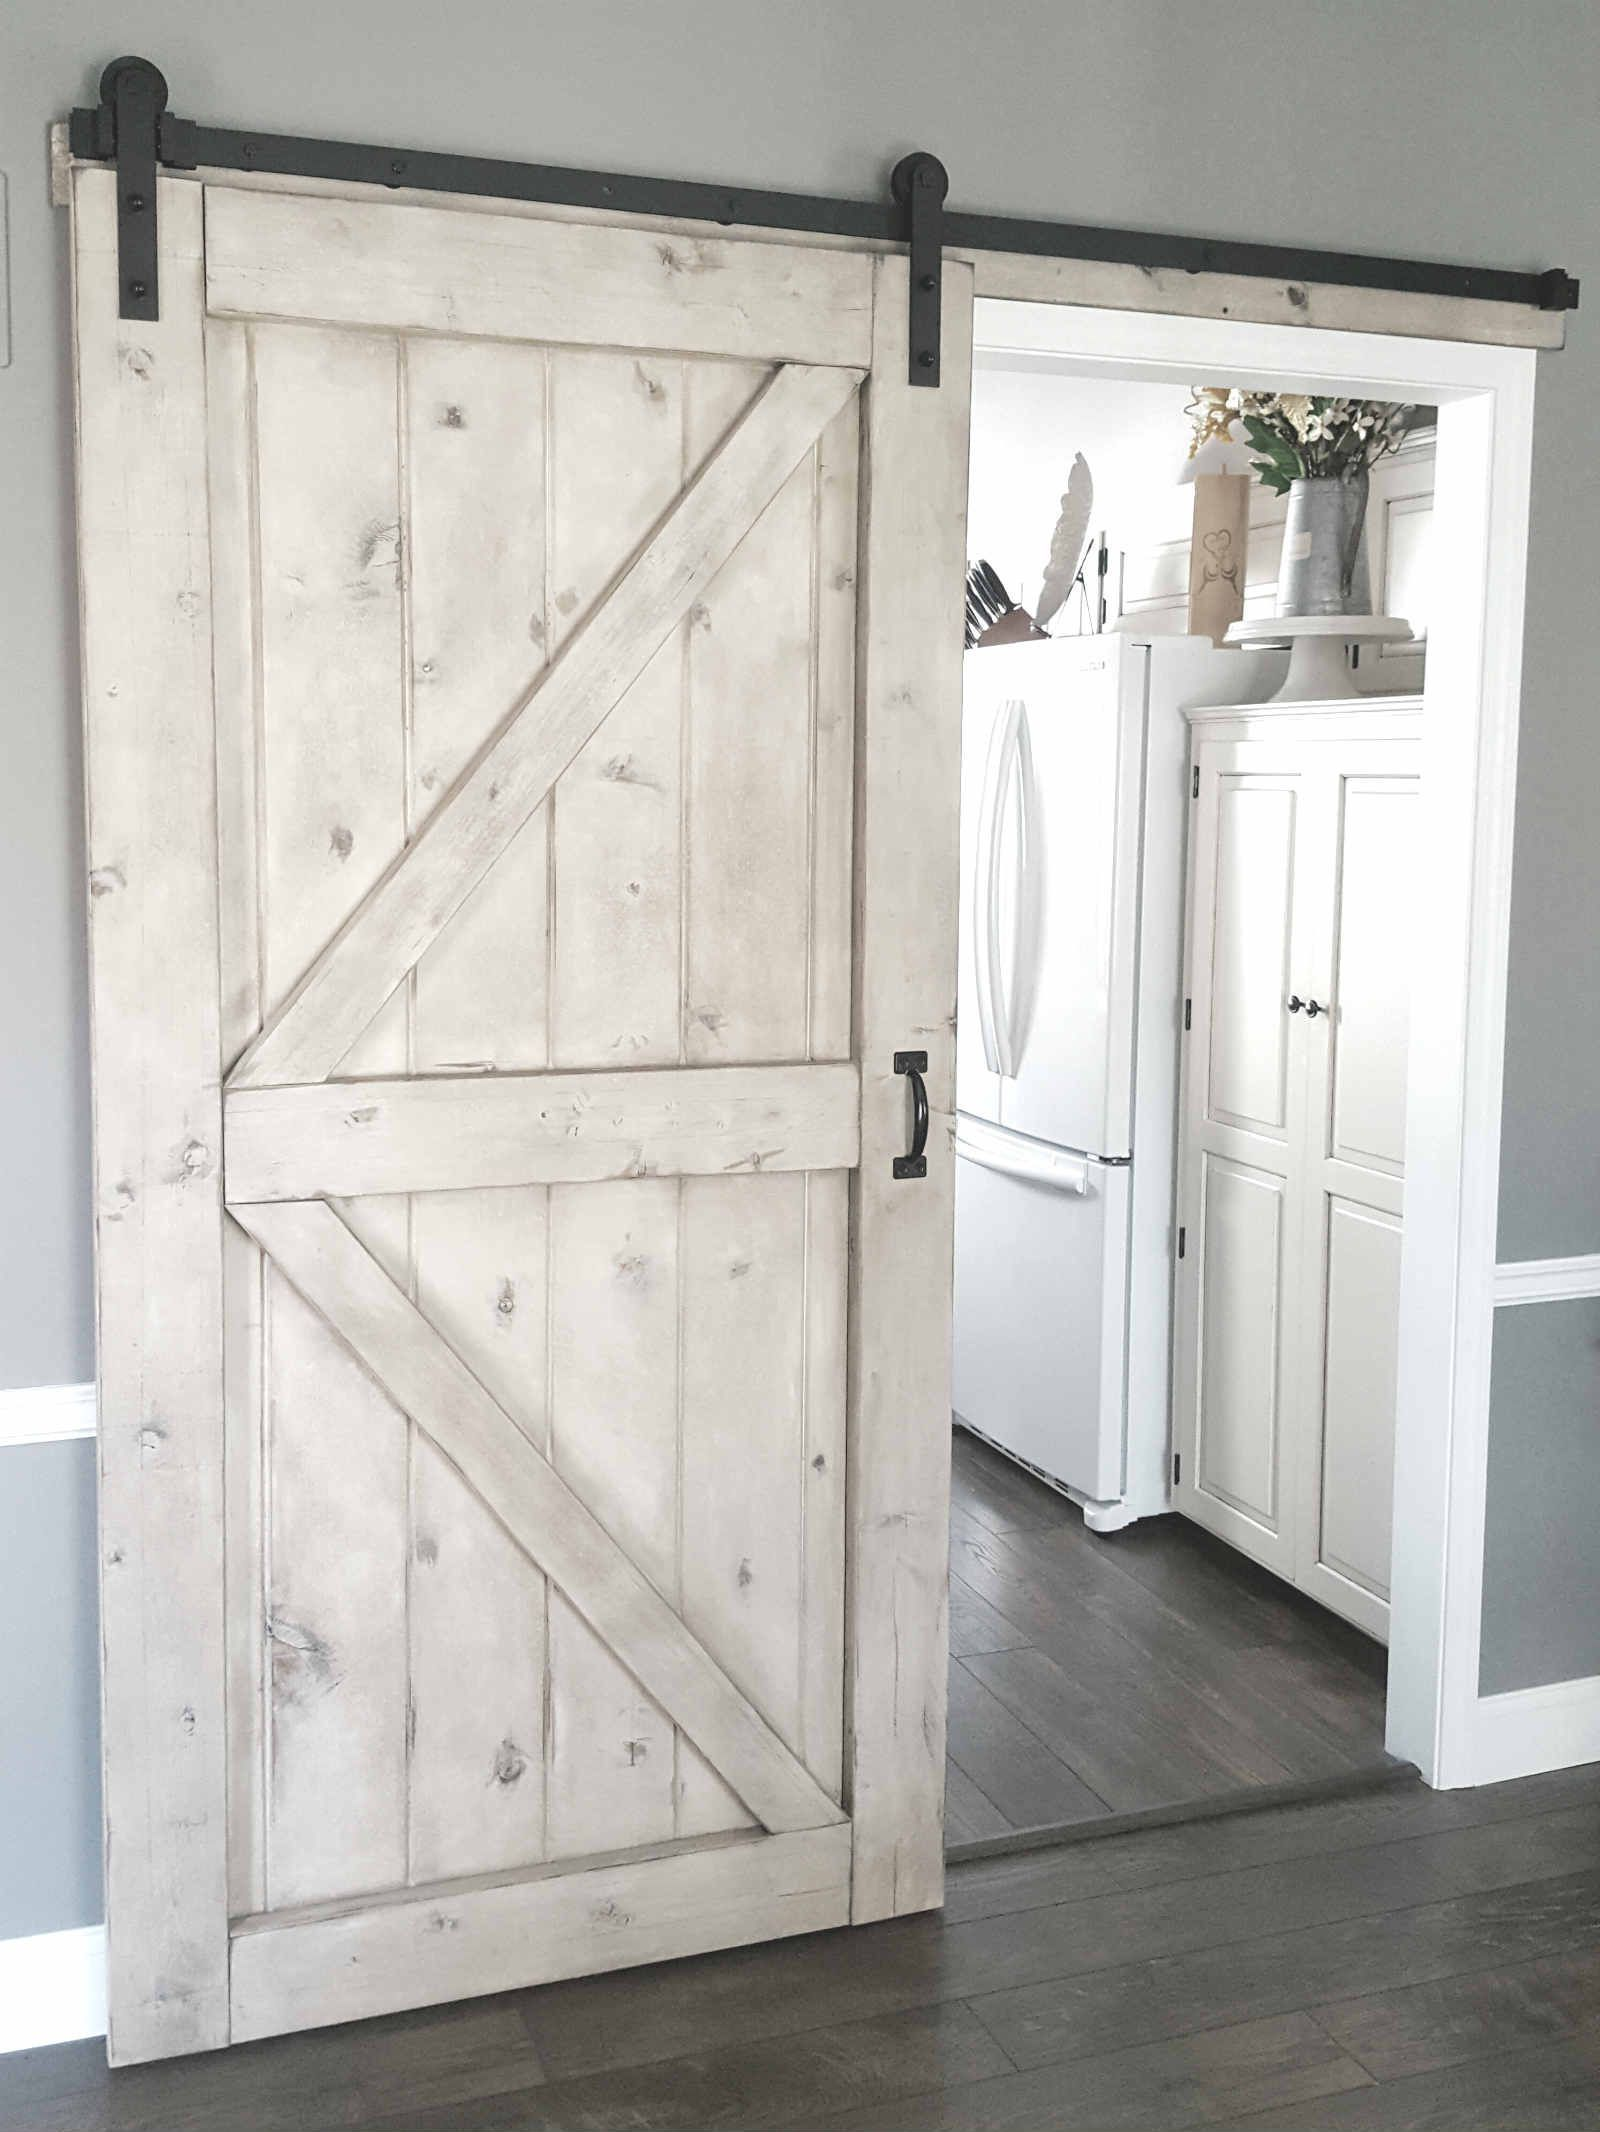 Barn Door Style Closet Doors Sliding Barn Door Rollers Double Sliding Barn Door Interior Barn Door Designs Home Door Design Diy Sliding Barn Door